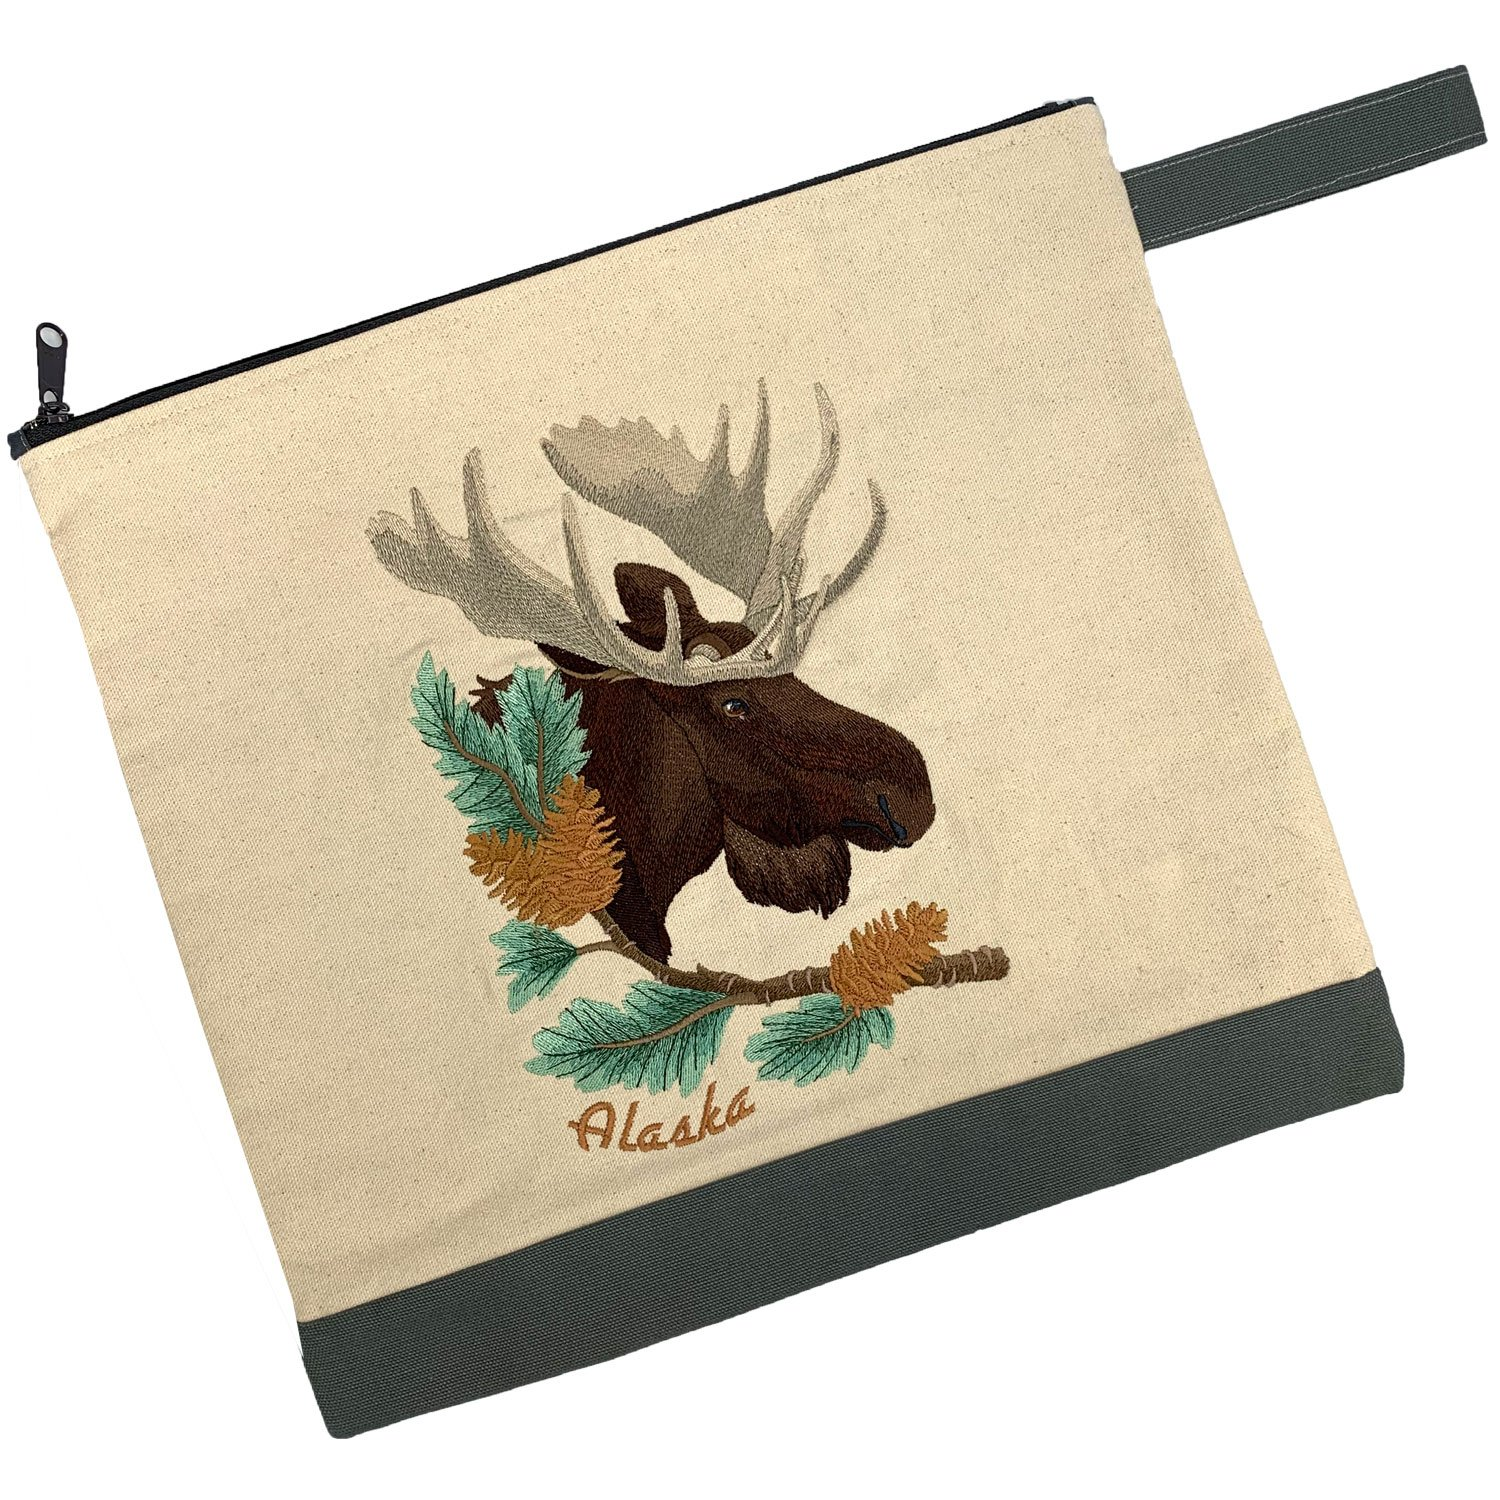 Embroidered Zip Pouch Handmade Moose in Pine